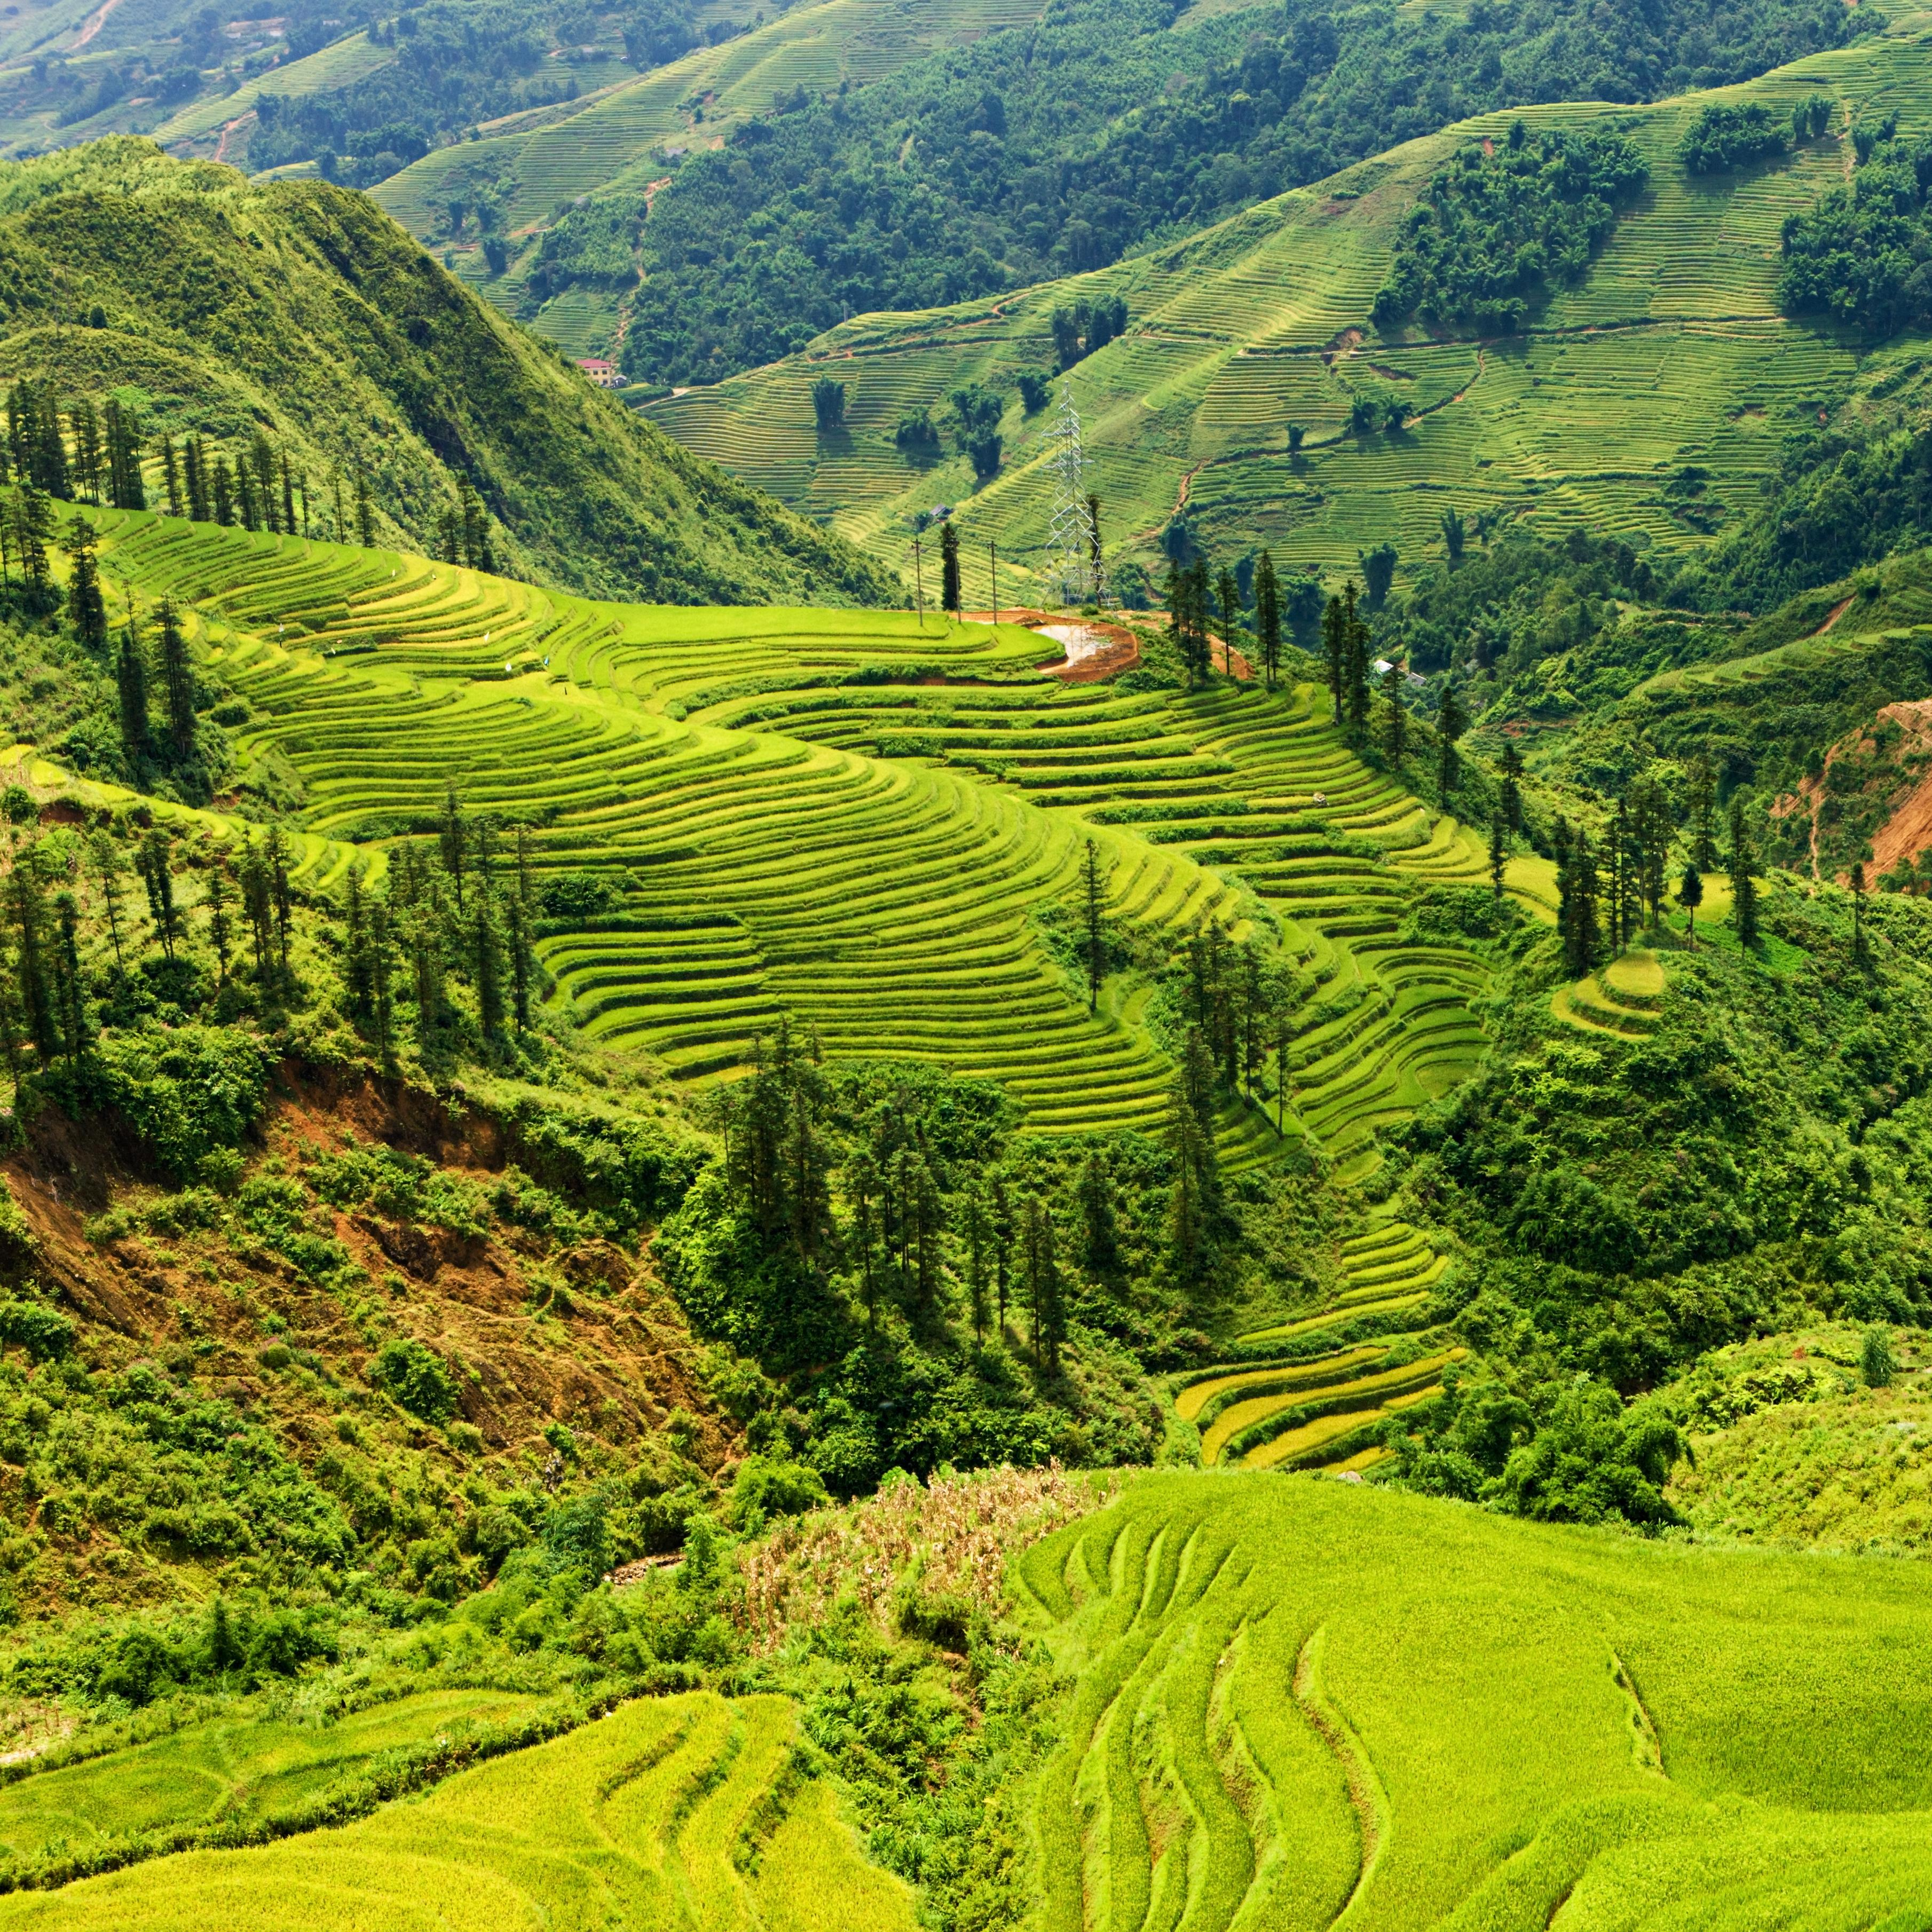 10 Best Northwest Vietnam Tours & Vacation Packages 2020